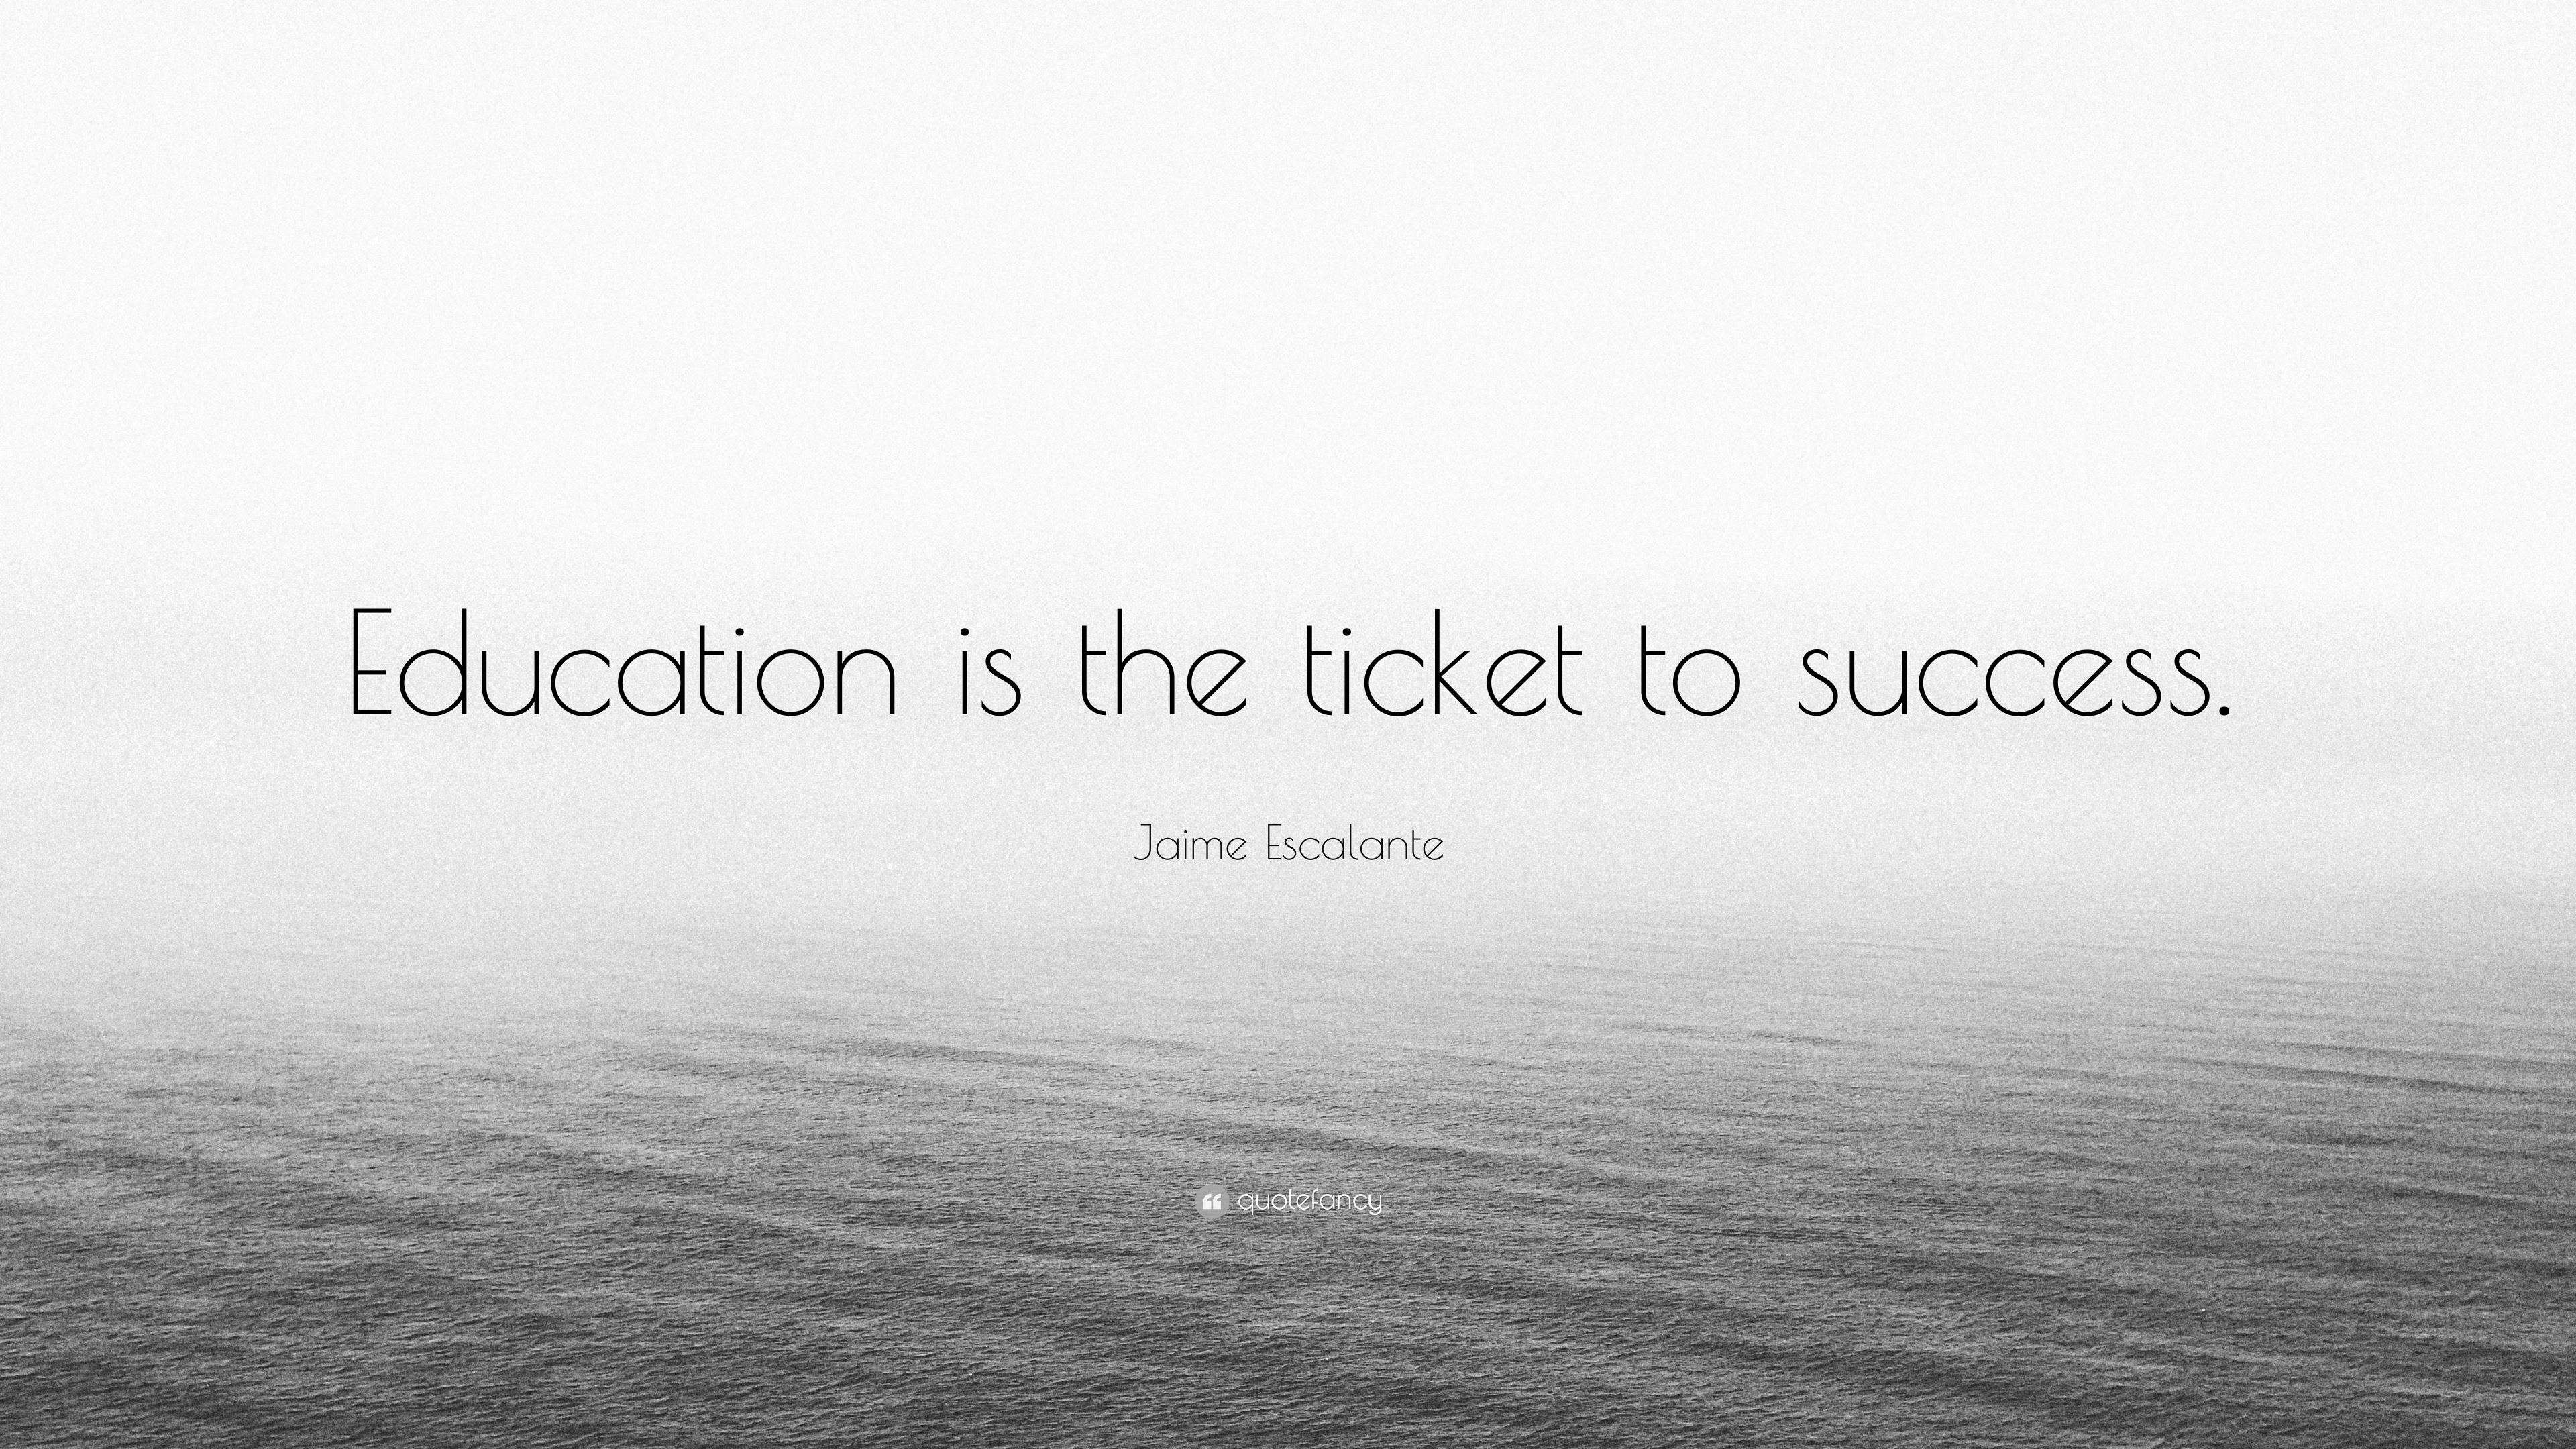 education is a ticket to success Unfortunately, because of ticket to work program guidelines, we are unable to help you with our job placement services the purpose of the ticket to work program and our services is to assist you in getting off disability benefits over time and becoming self-sufficient.